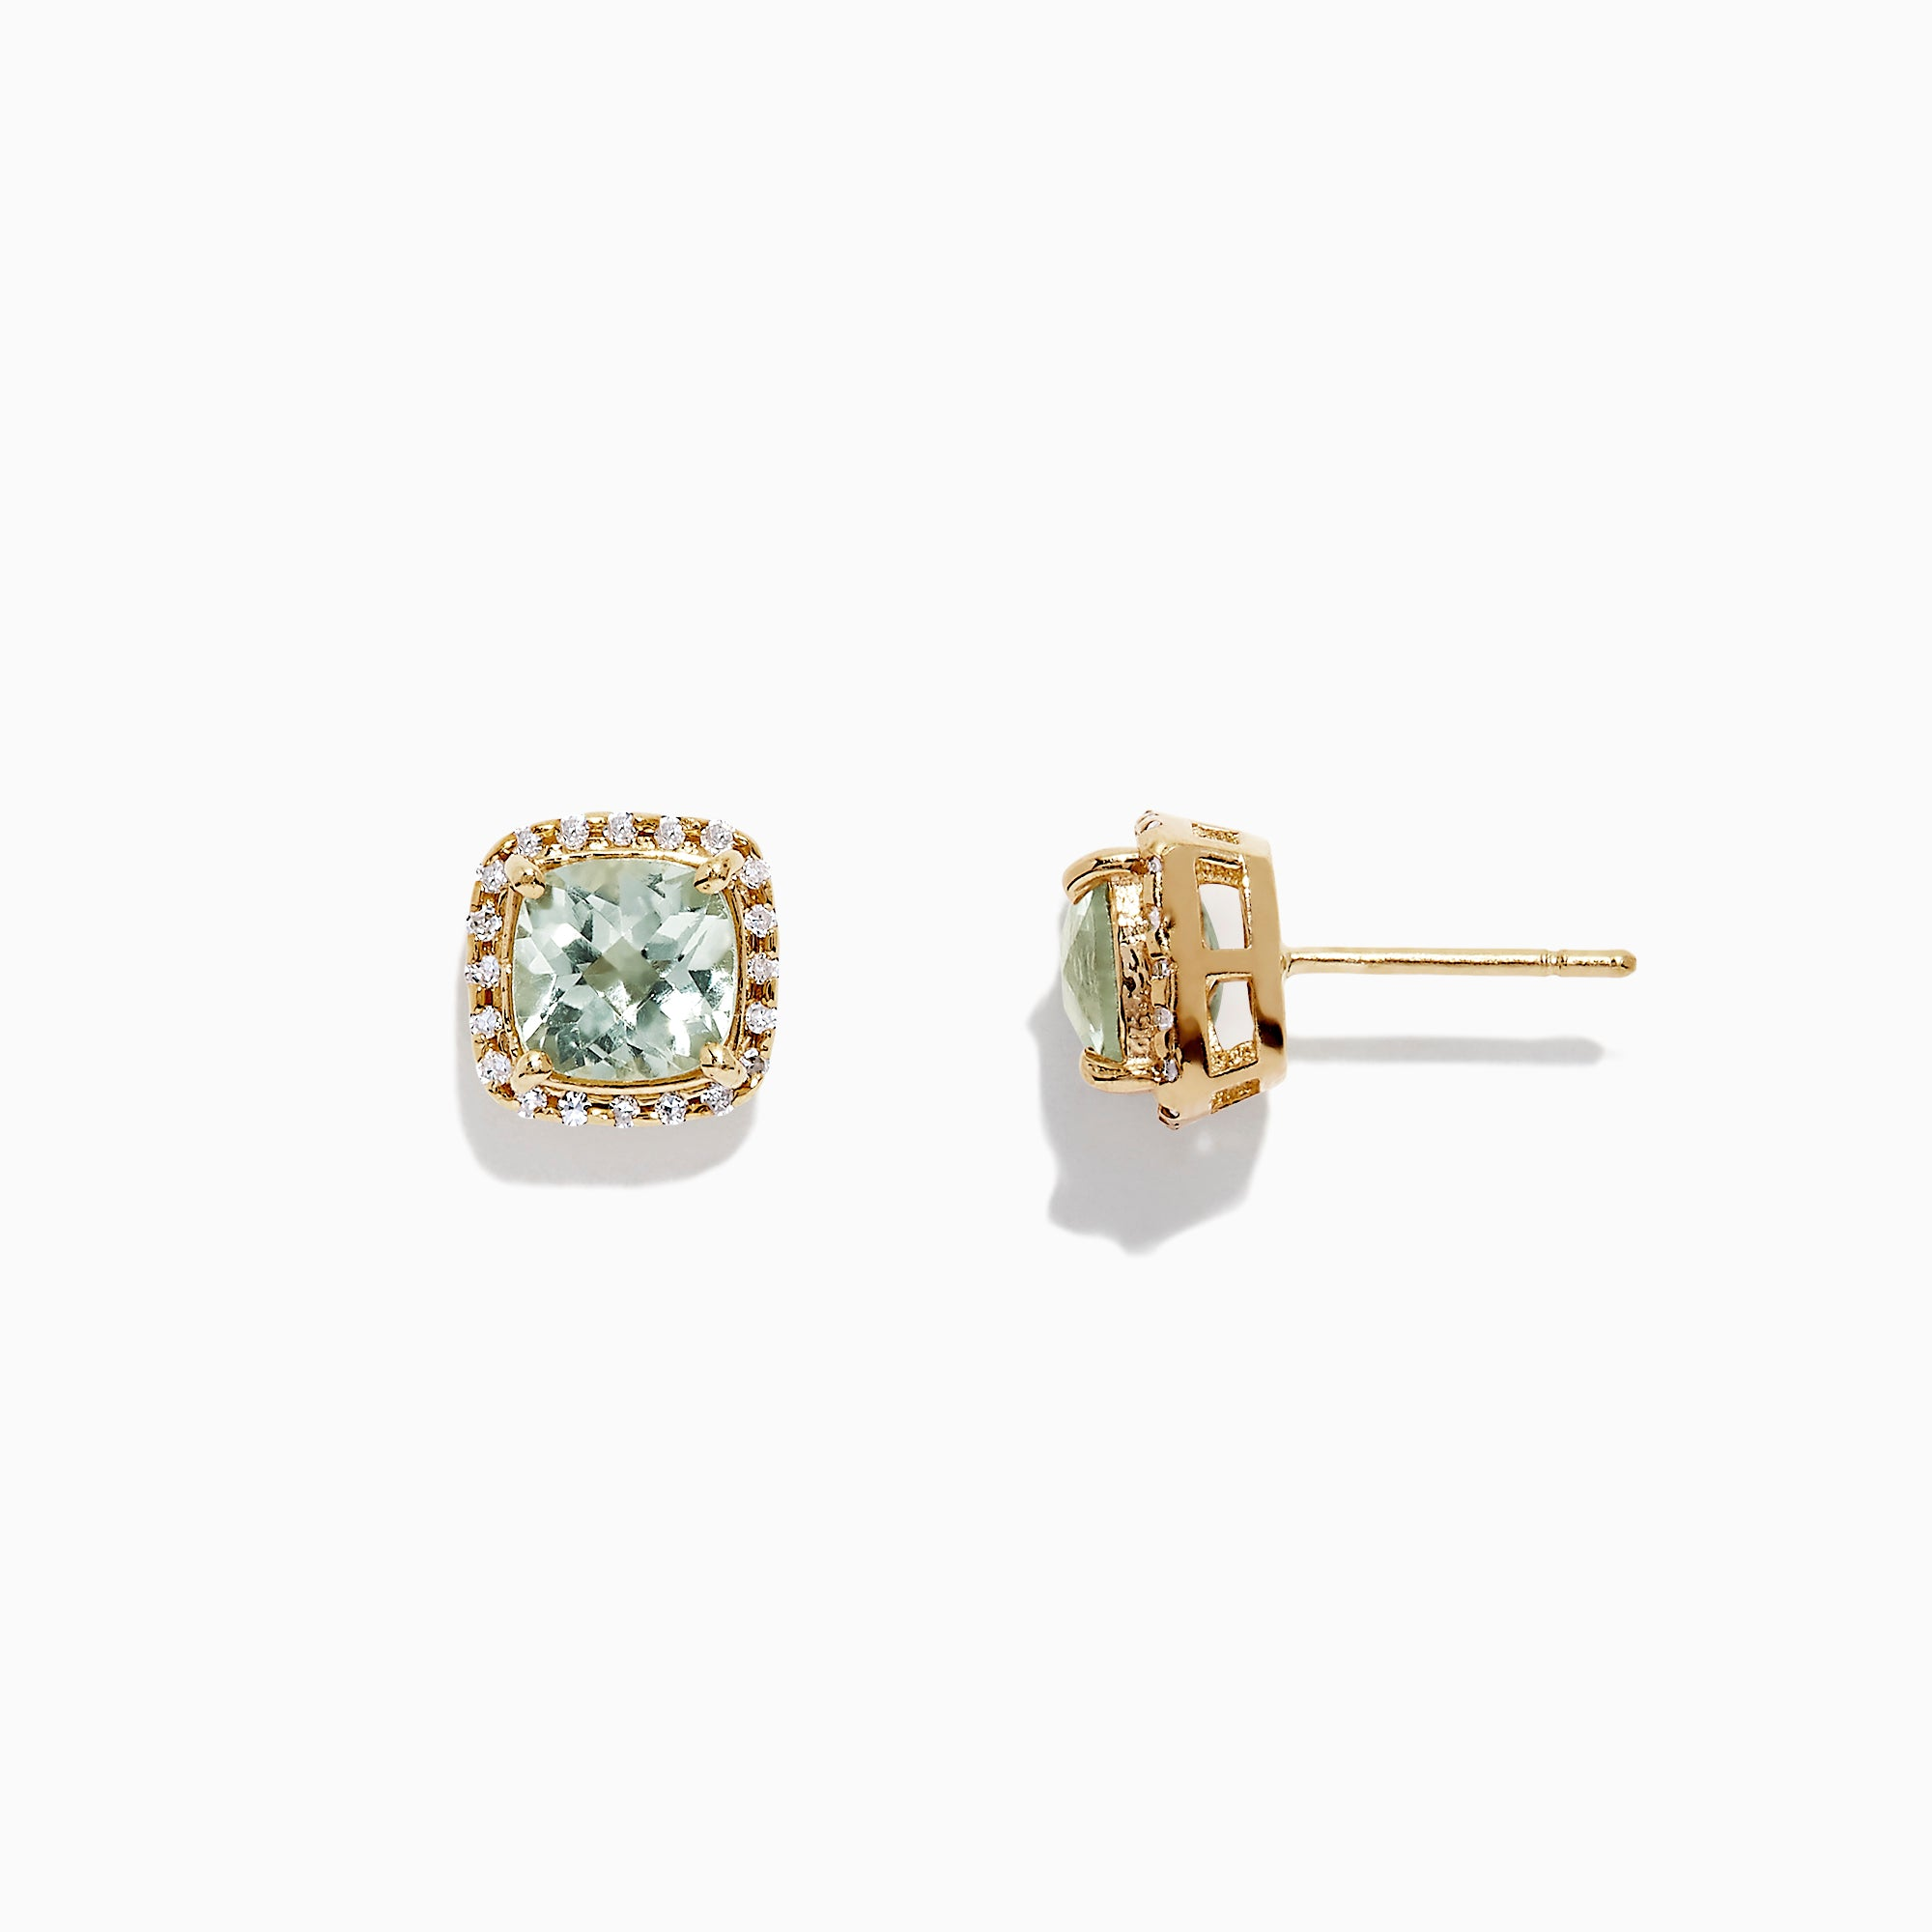 Effy 14K Yellow Gold Green Amethyst Stud Earrings, 1.86 TCW